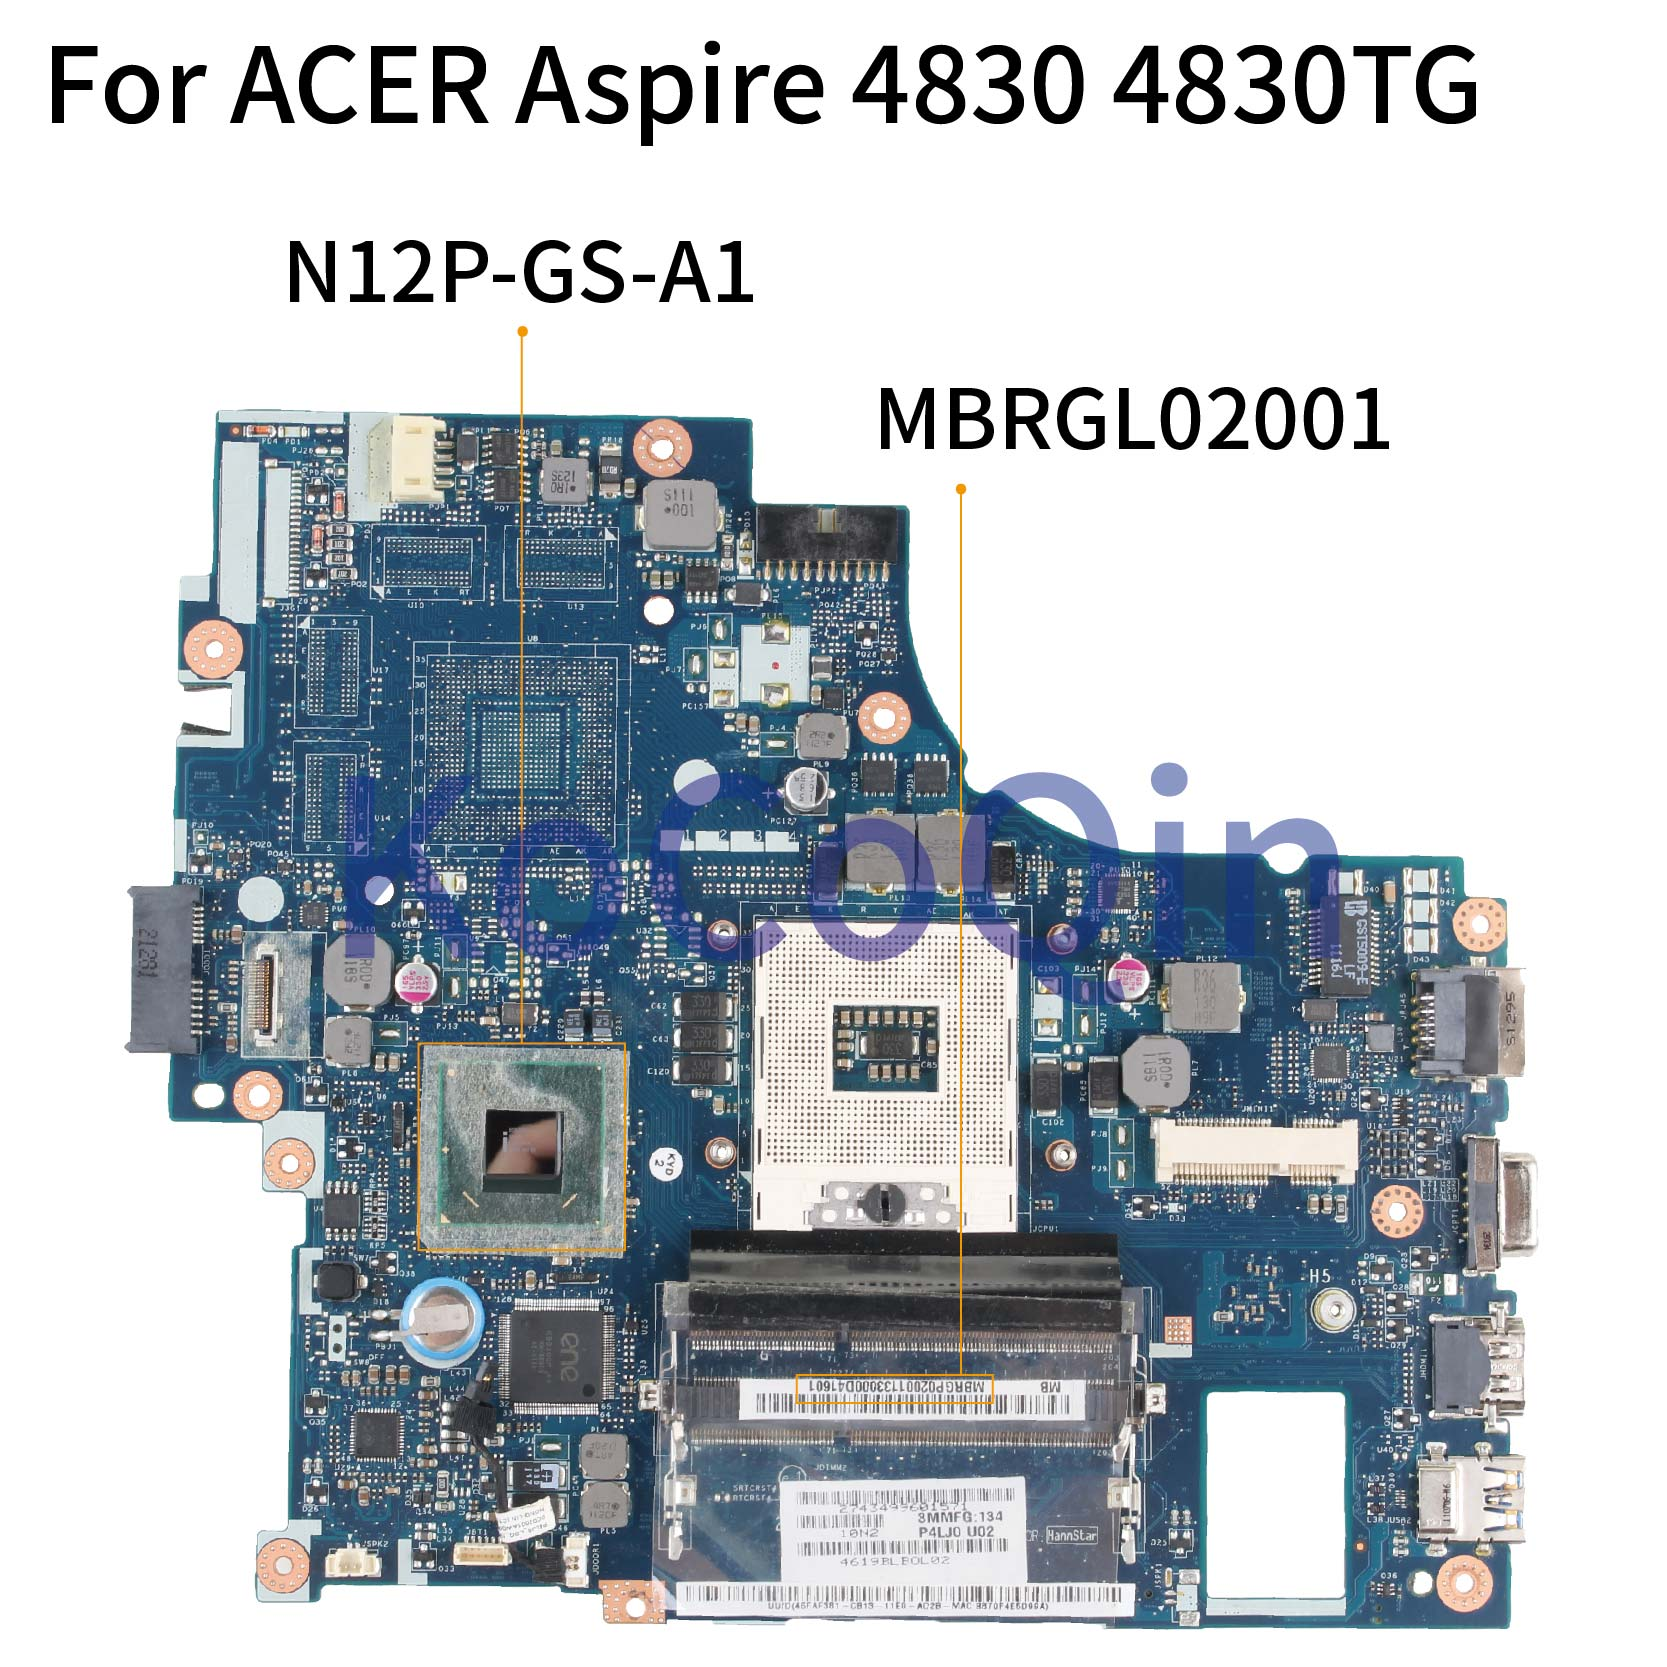 KoCoQin Laptop motherboard For <font><b>ACER</b></font> Aspire 4830 <font><b>4830TG</b></font> Mainboard LA-7231P MBRGP02001 HM65 N12P-GS-A1 image